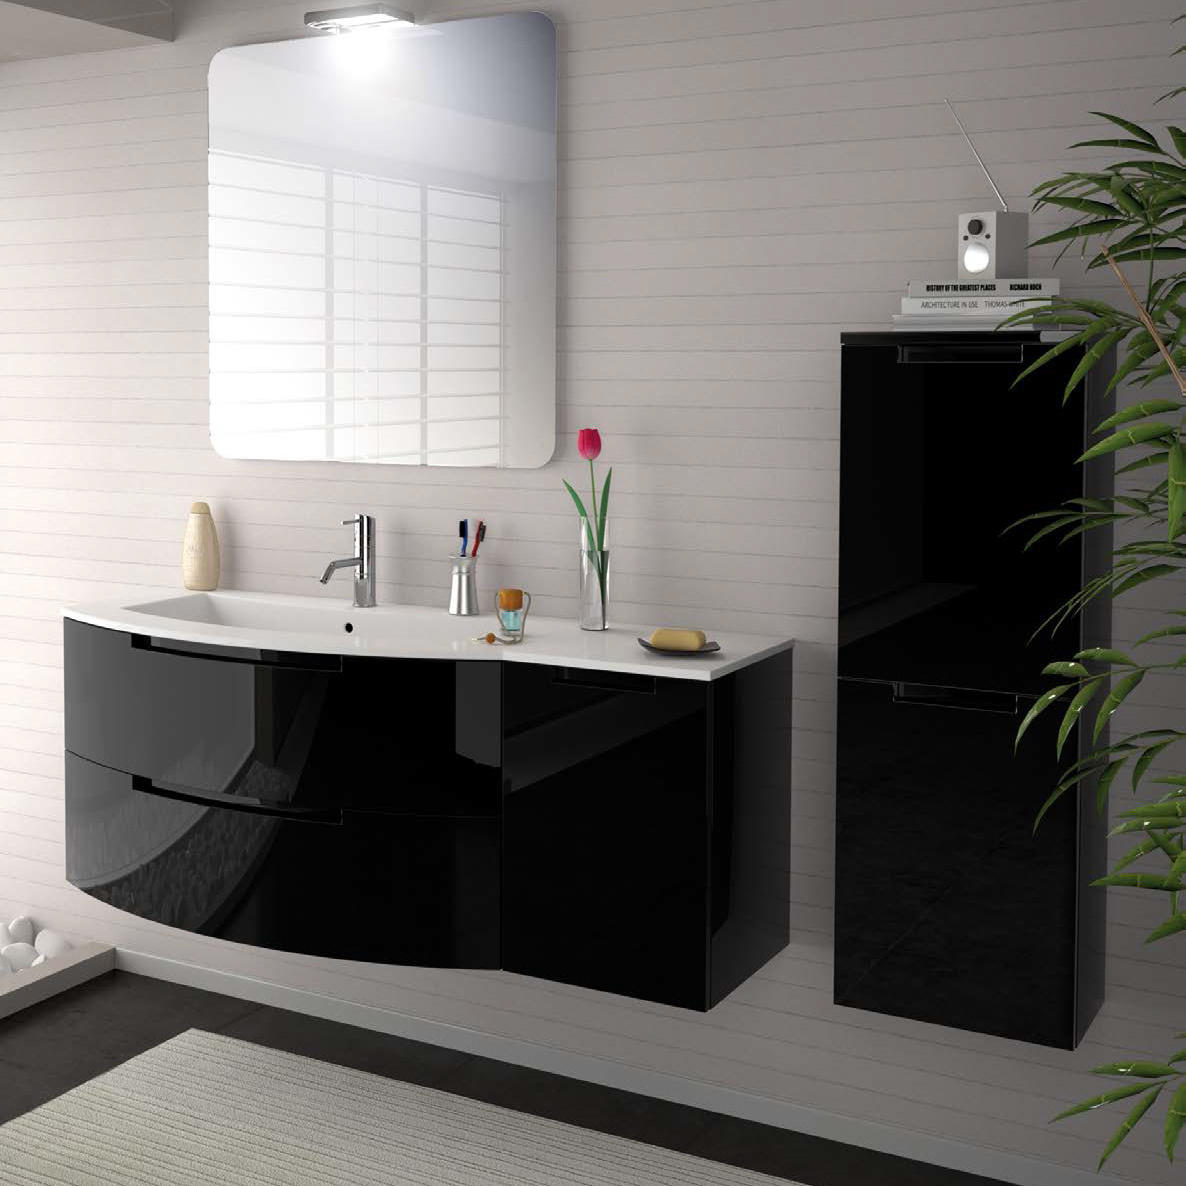 Floating Bathroom Vanity Classy 53 Inch Modern Floating Bathroom Vanity Black Glossy Finish With Design Decoration